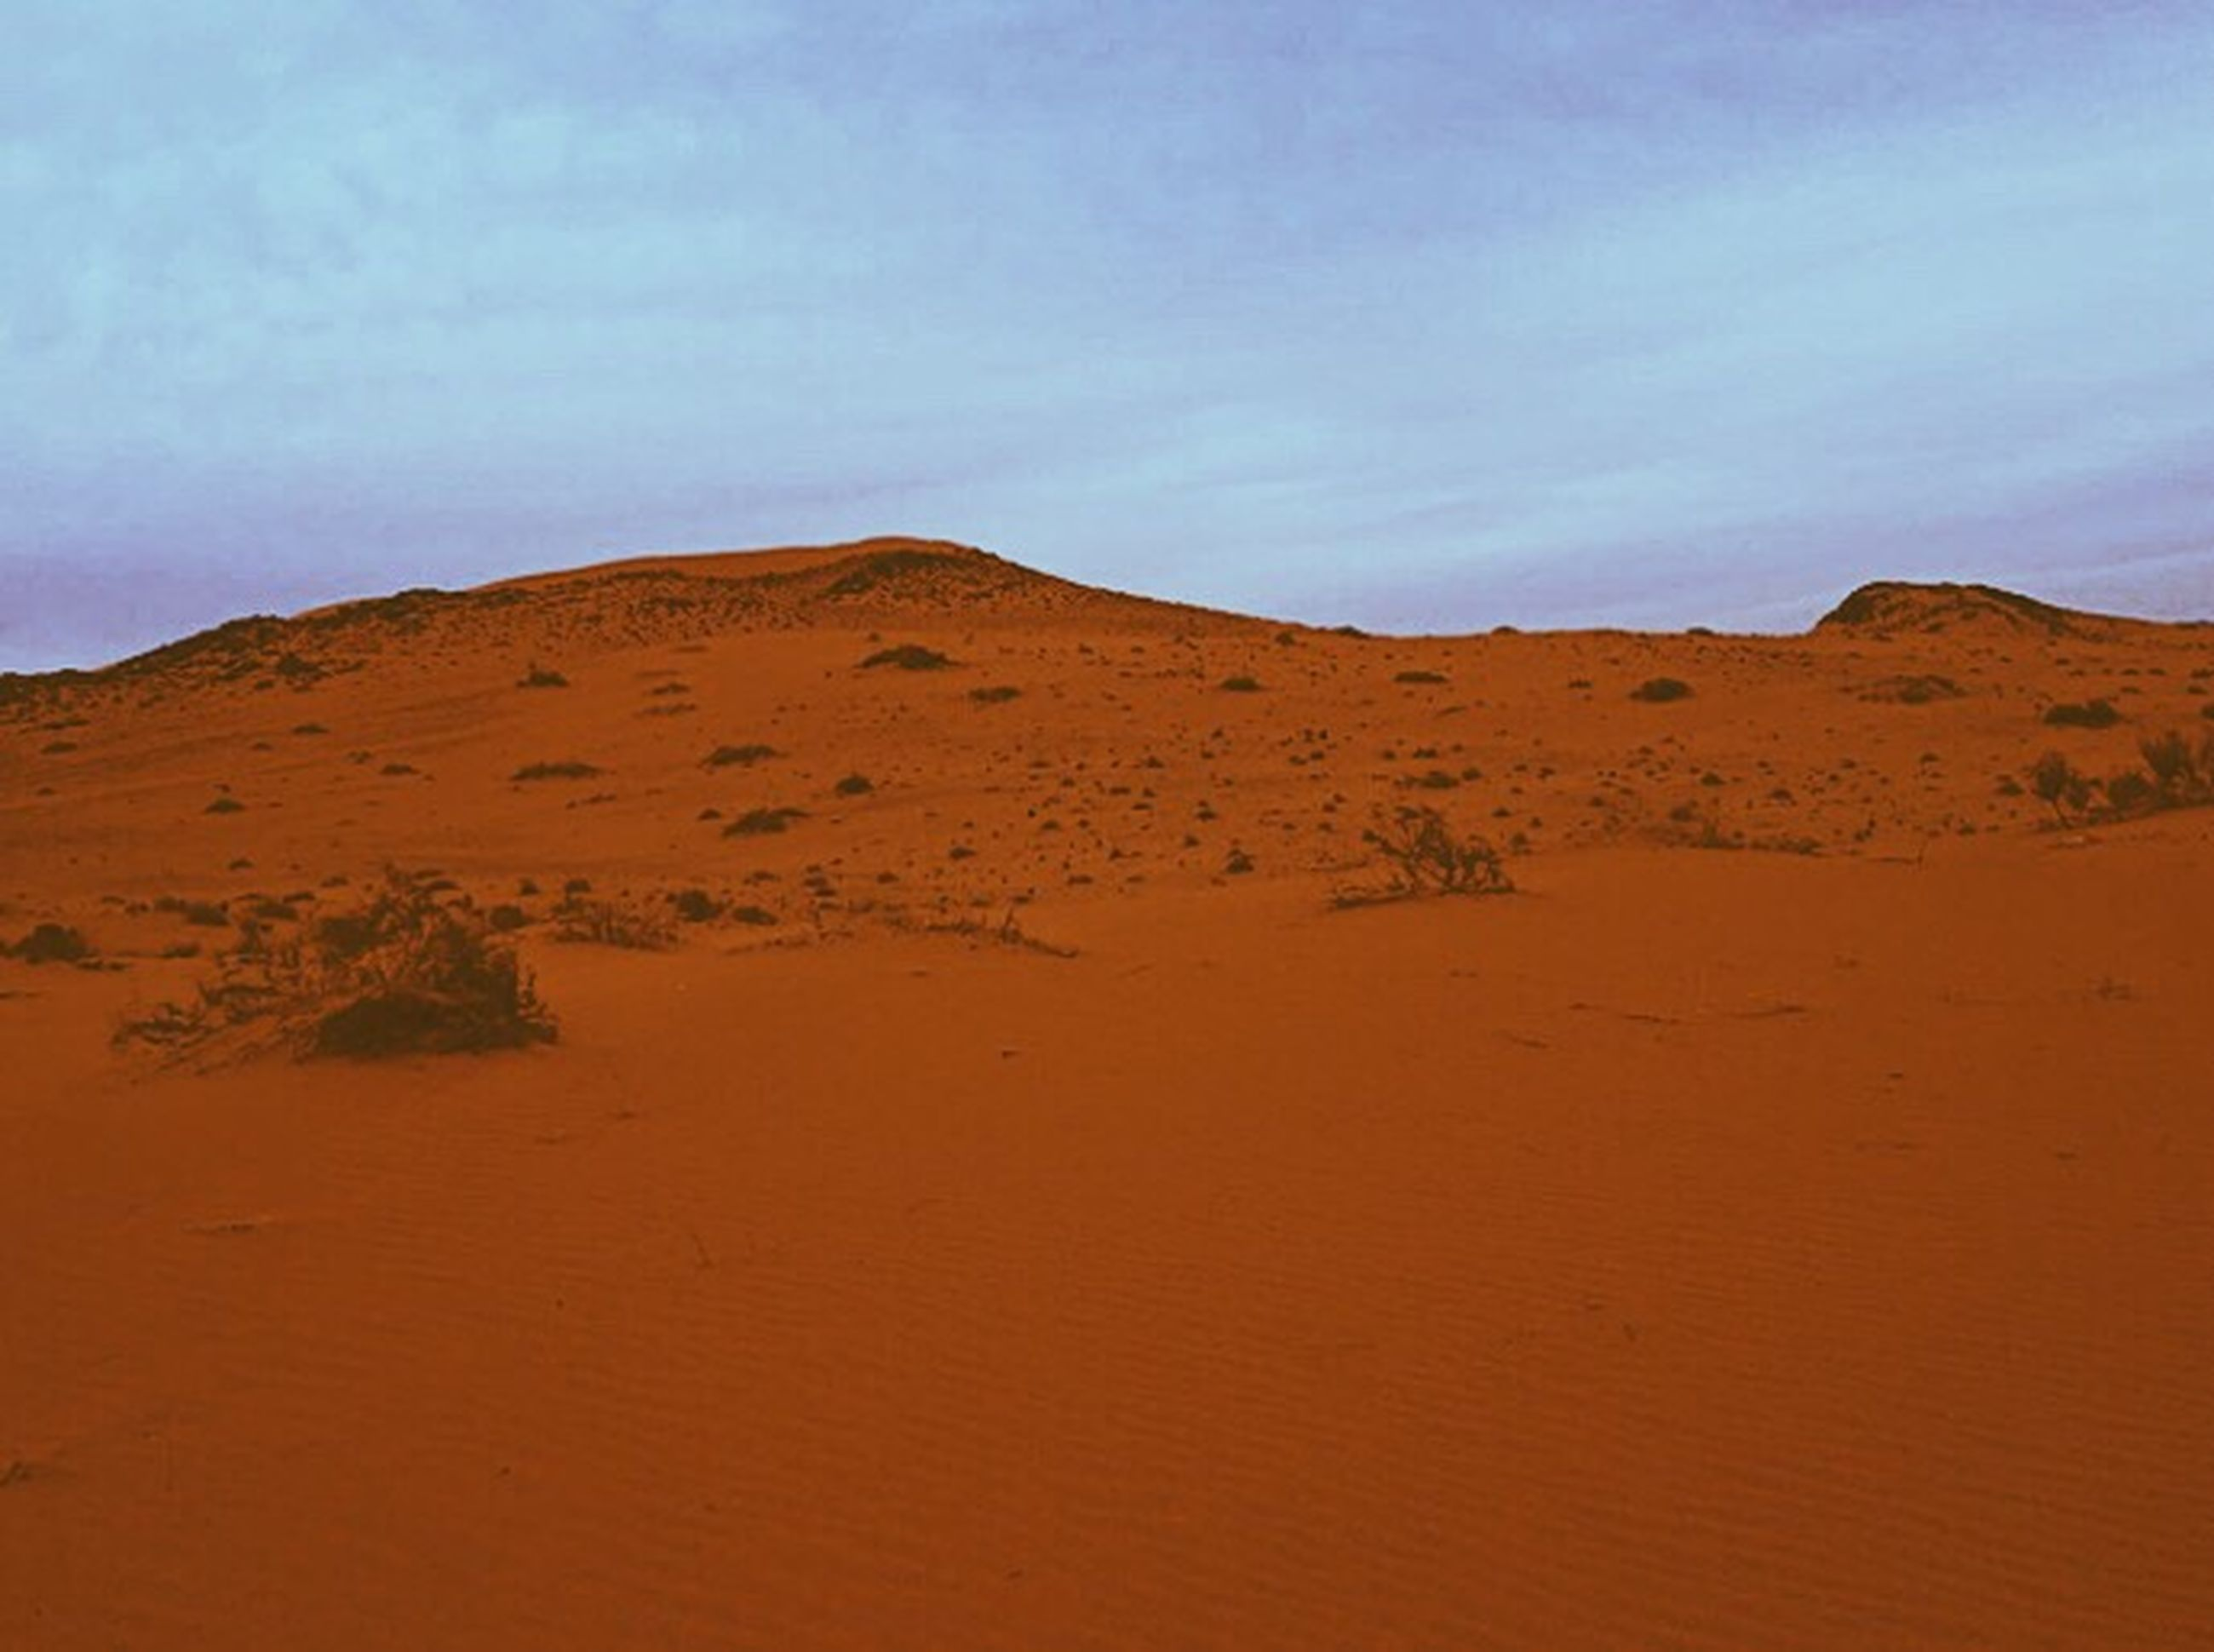 sand, nature, sand dune, sunset, desert, outdoors, sky, red, arid climate, landscape, brown, beauty in nature, textured, no people, day, ecosystem, water, mountain